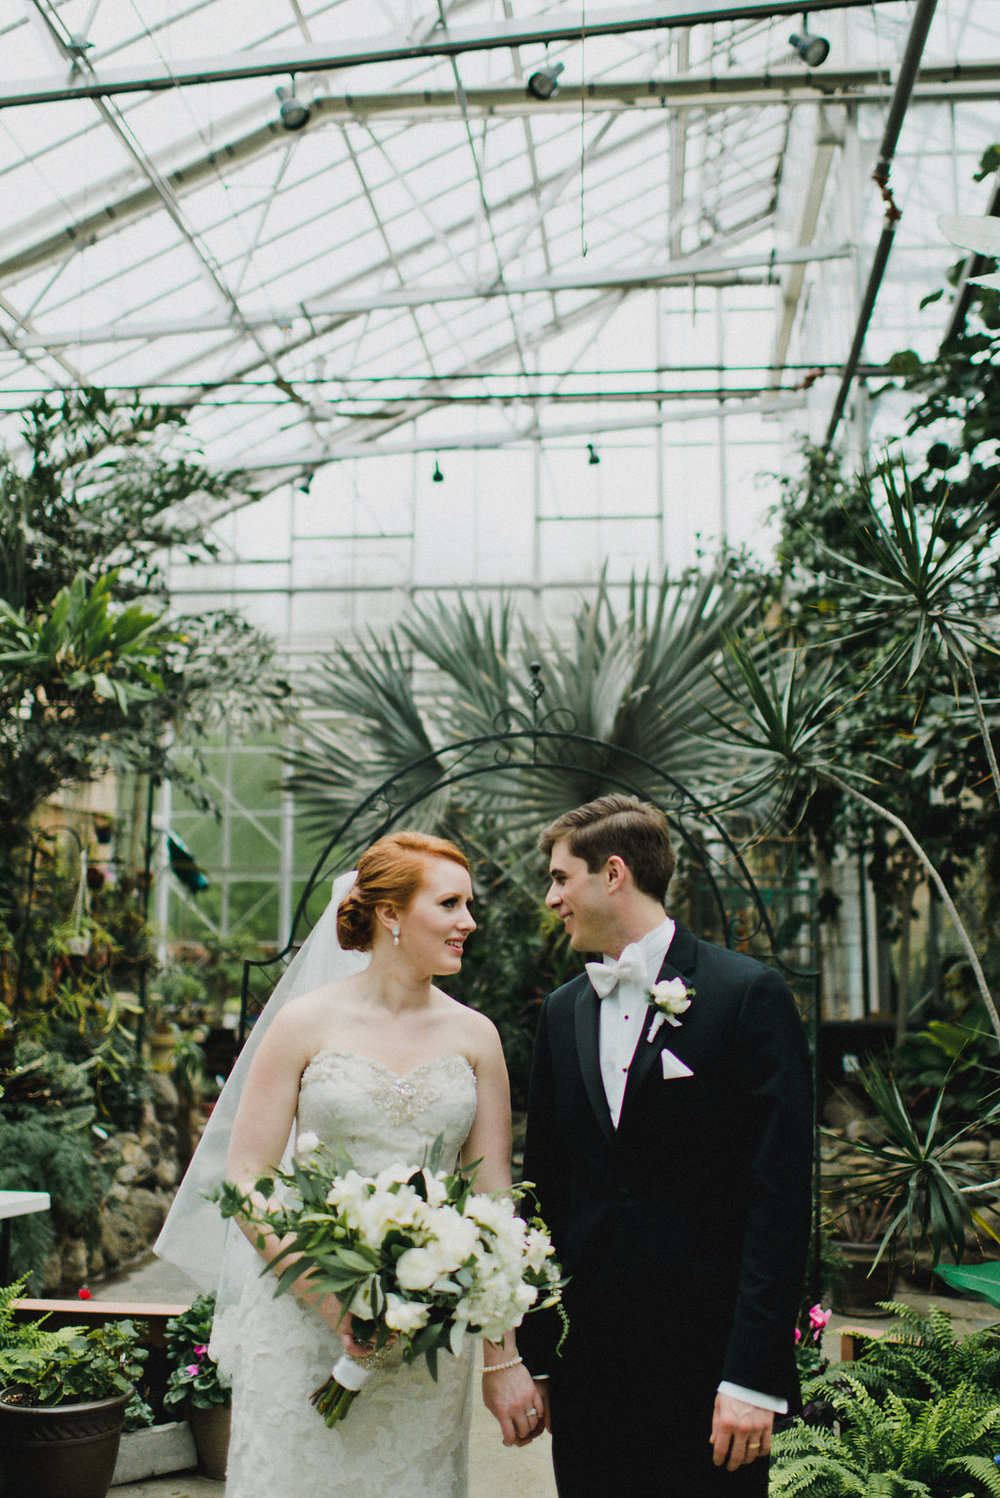 Mara & Brad | Molly Taylor and Co.